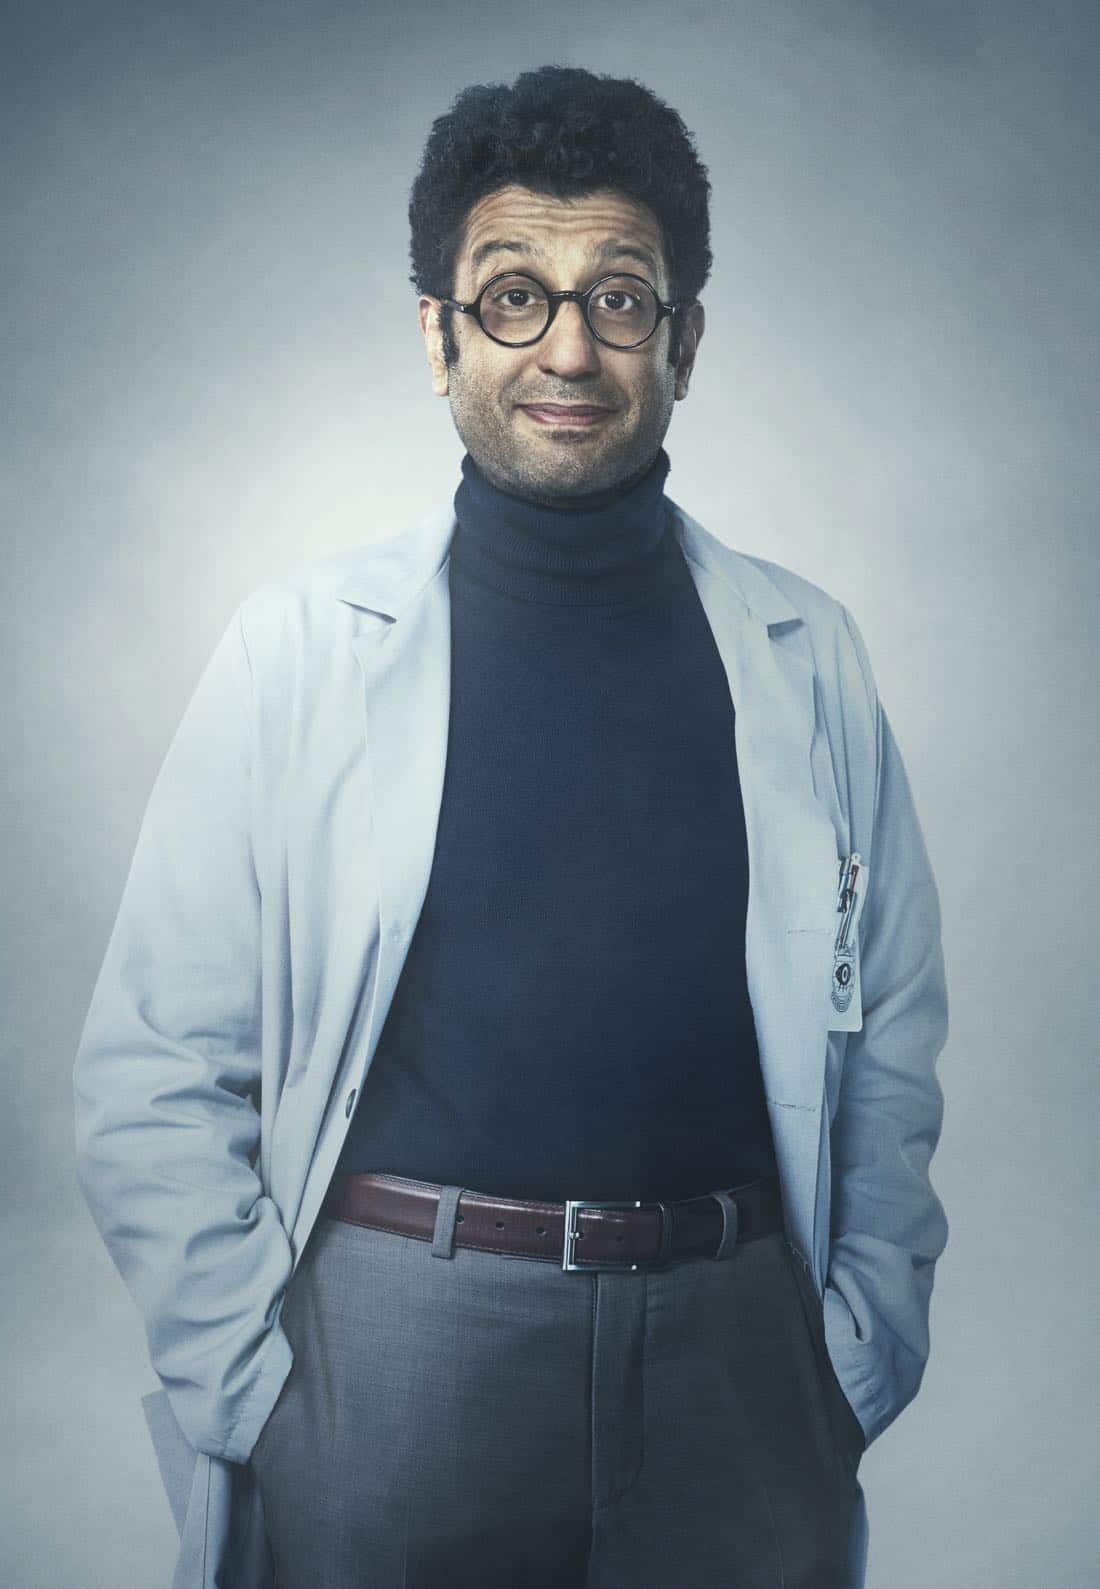 GHOSTED: Adeel Akhtar in GHOSTED premiering Sunday, Oct. 1 (8:30-9:00 PM ET/PT) on FOX. ©2017 Fox Broadcasting Co. CR: Scott Council /FOX